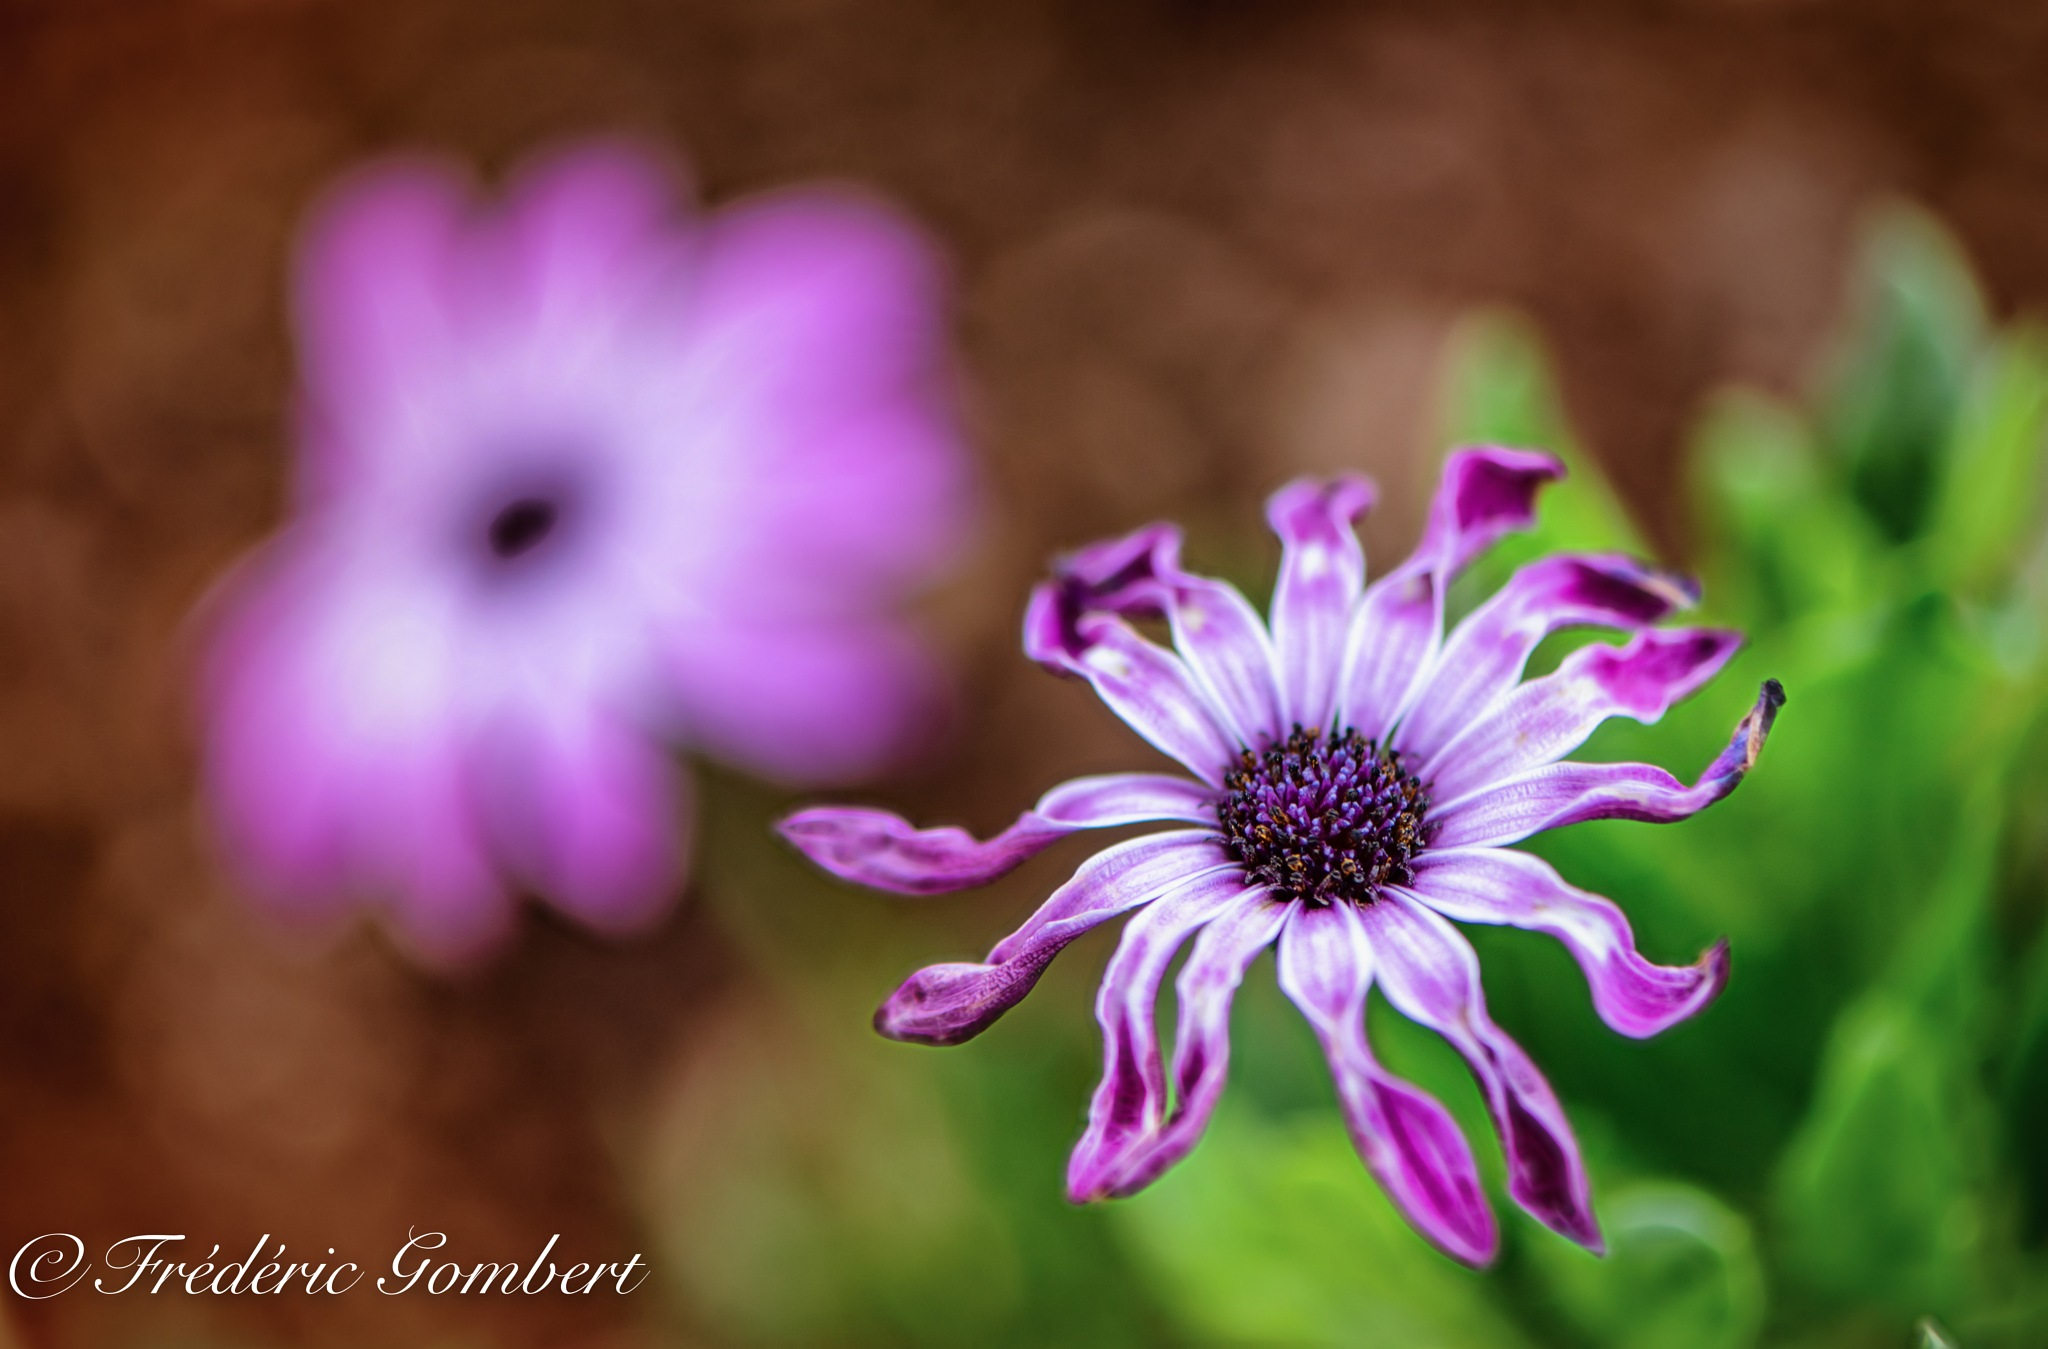 Dancing by Frederic Gombert